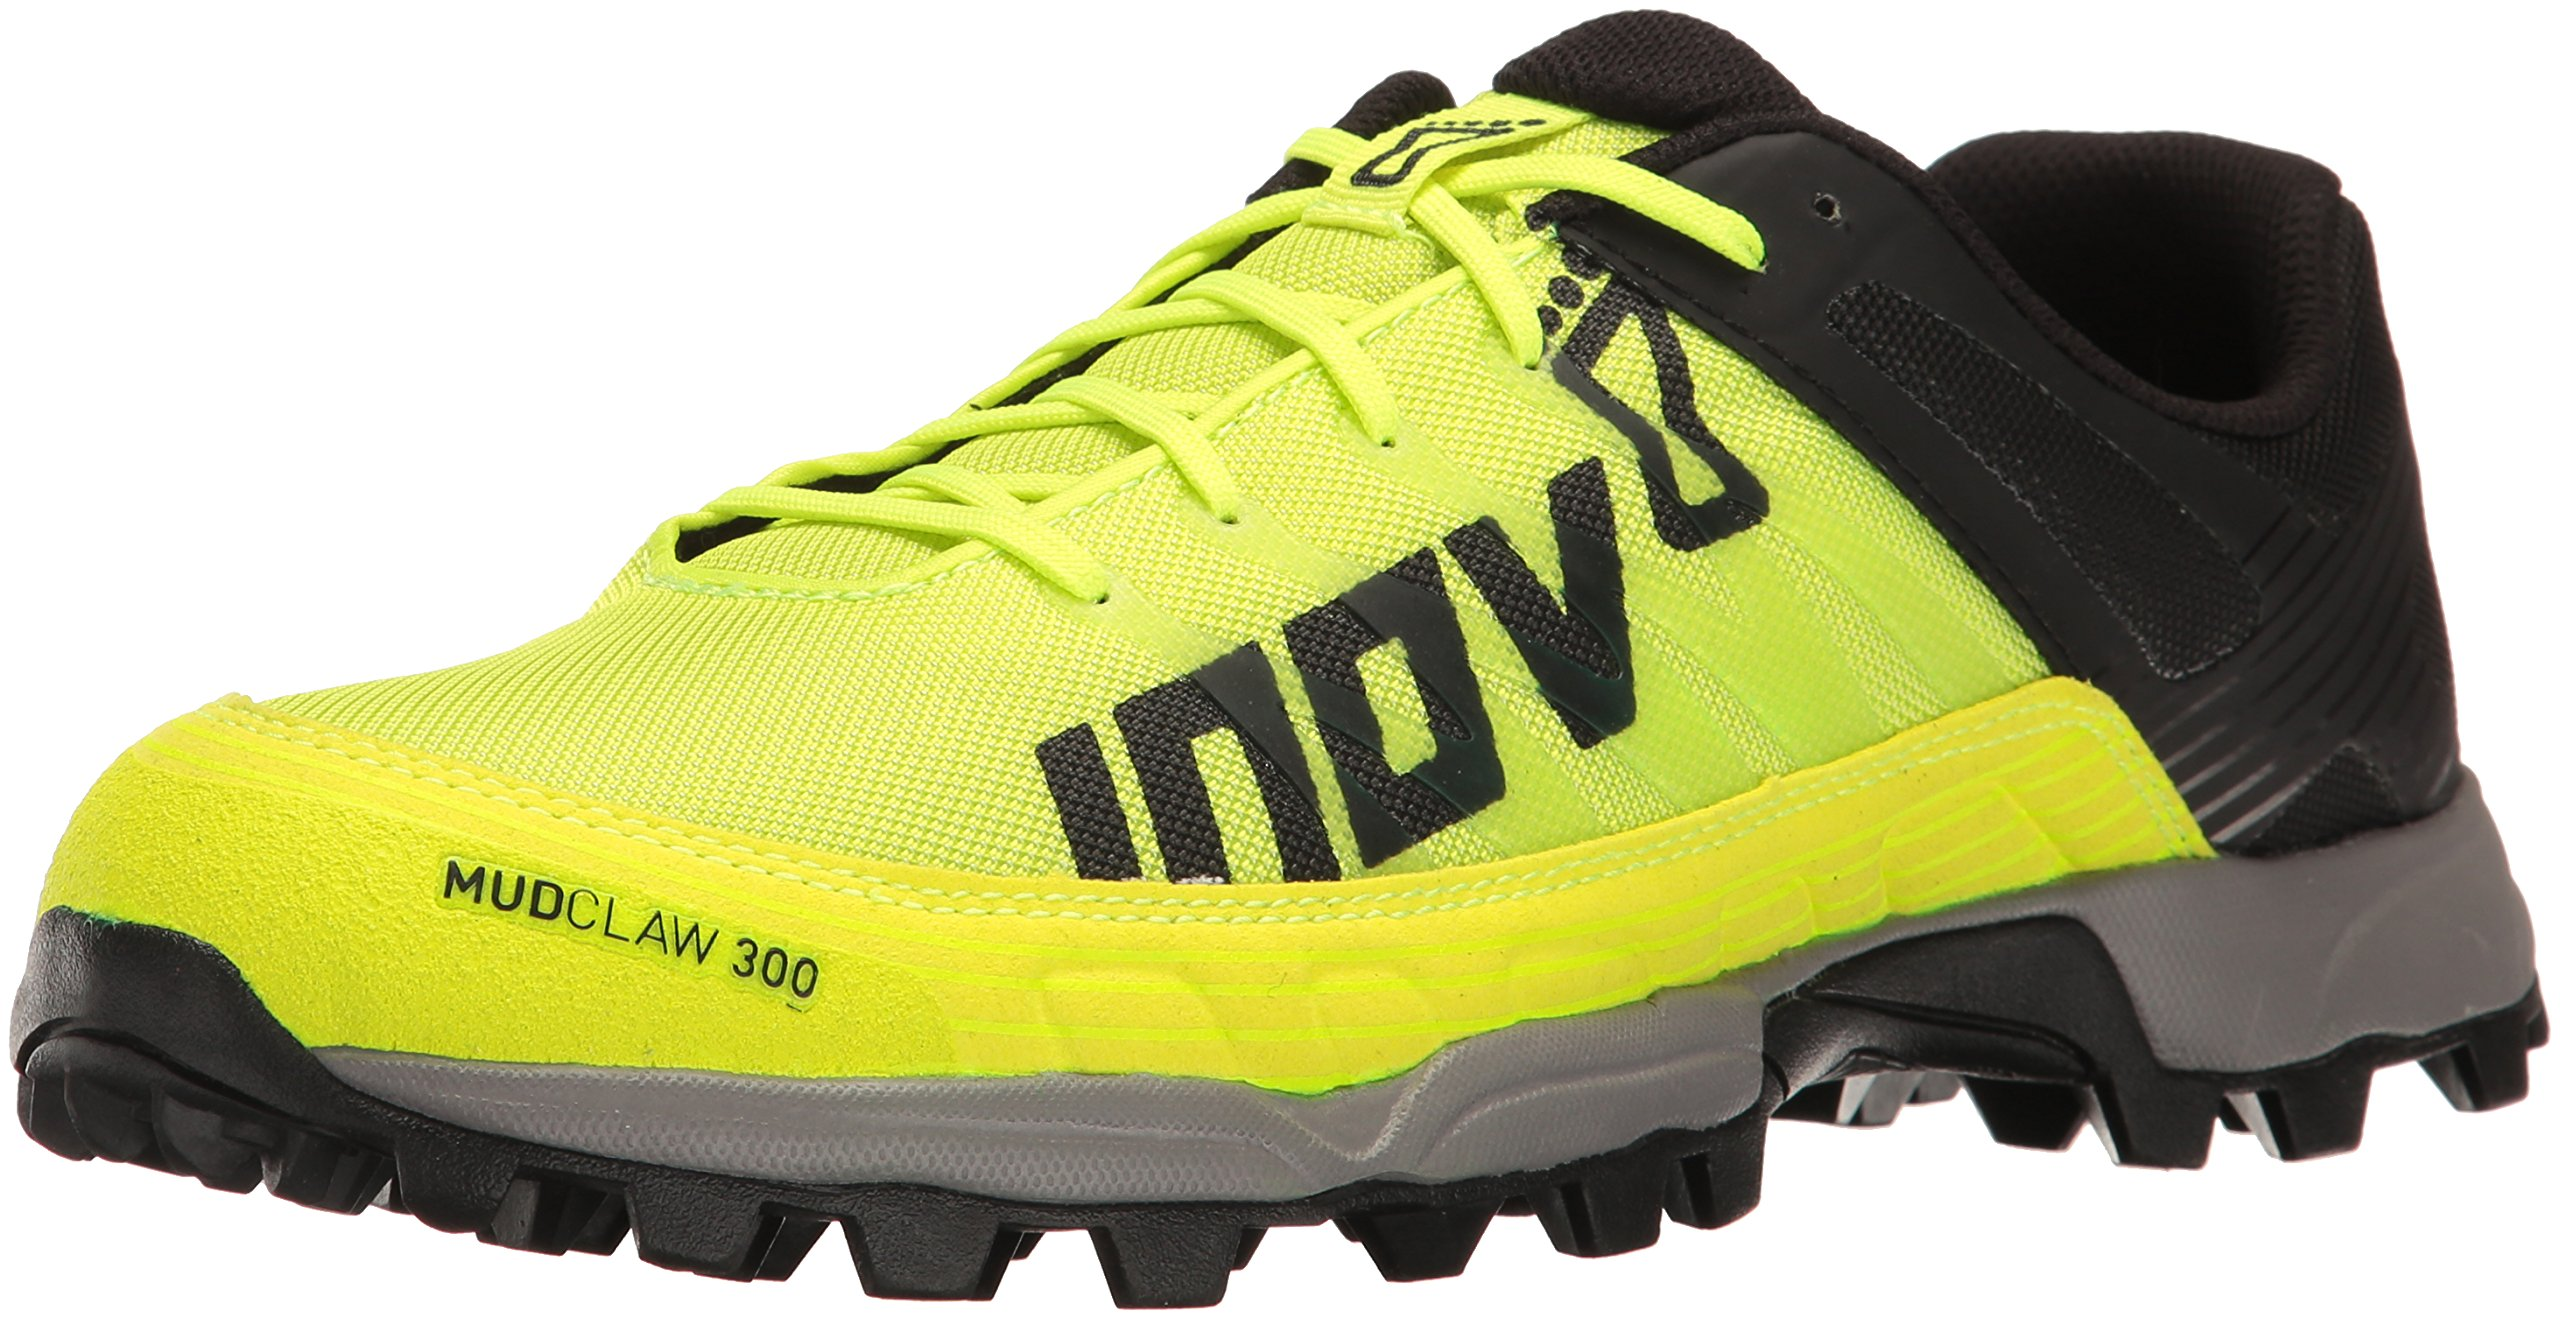 Inov-8 Men's Mudclaw 300 Trail Running Shoe, Neon Yellow/Black/Grey, 9 C US